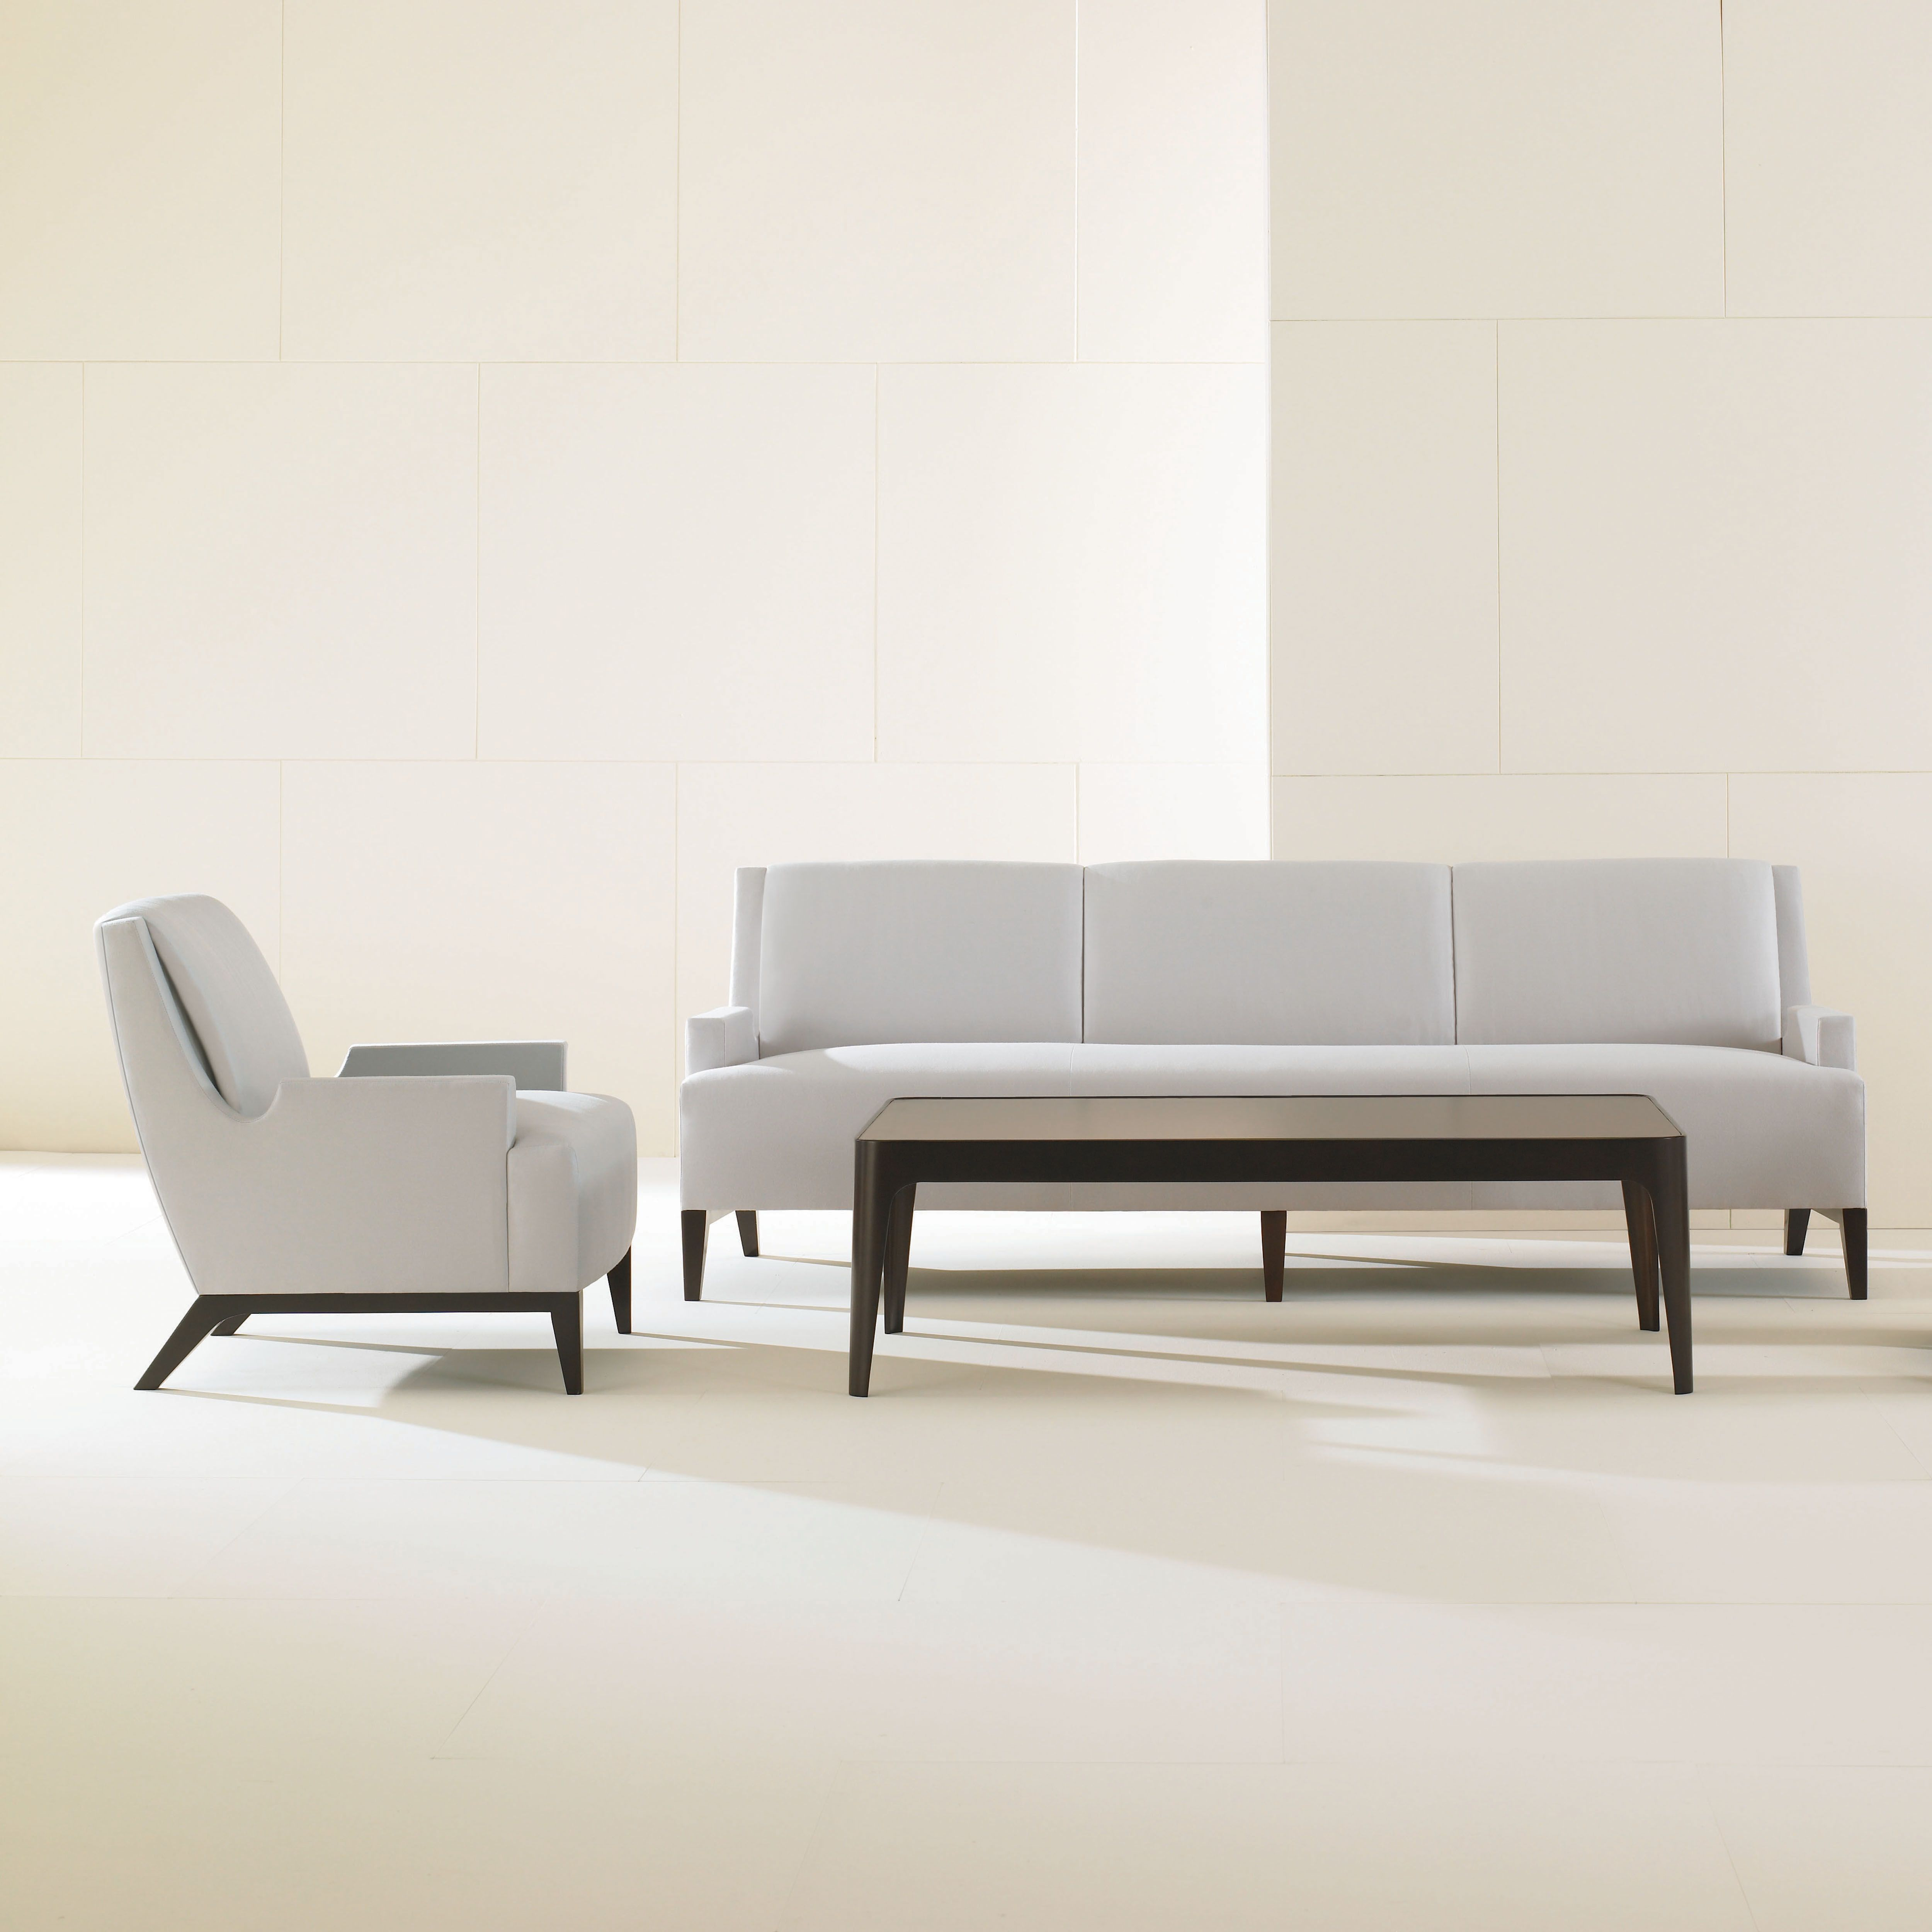 Hbf Perfect Pitch Lounge Seating Designer Barbara Barry